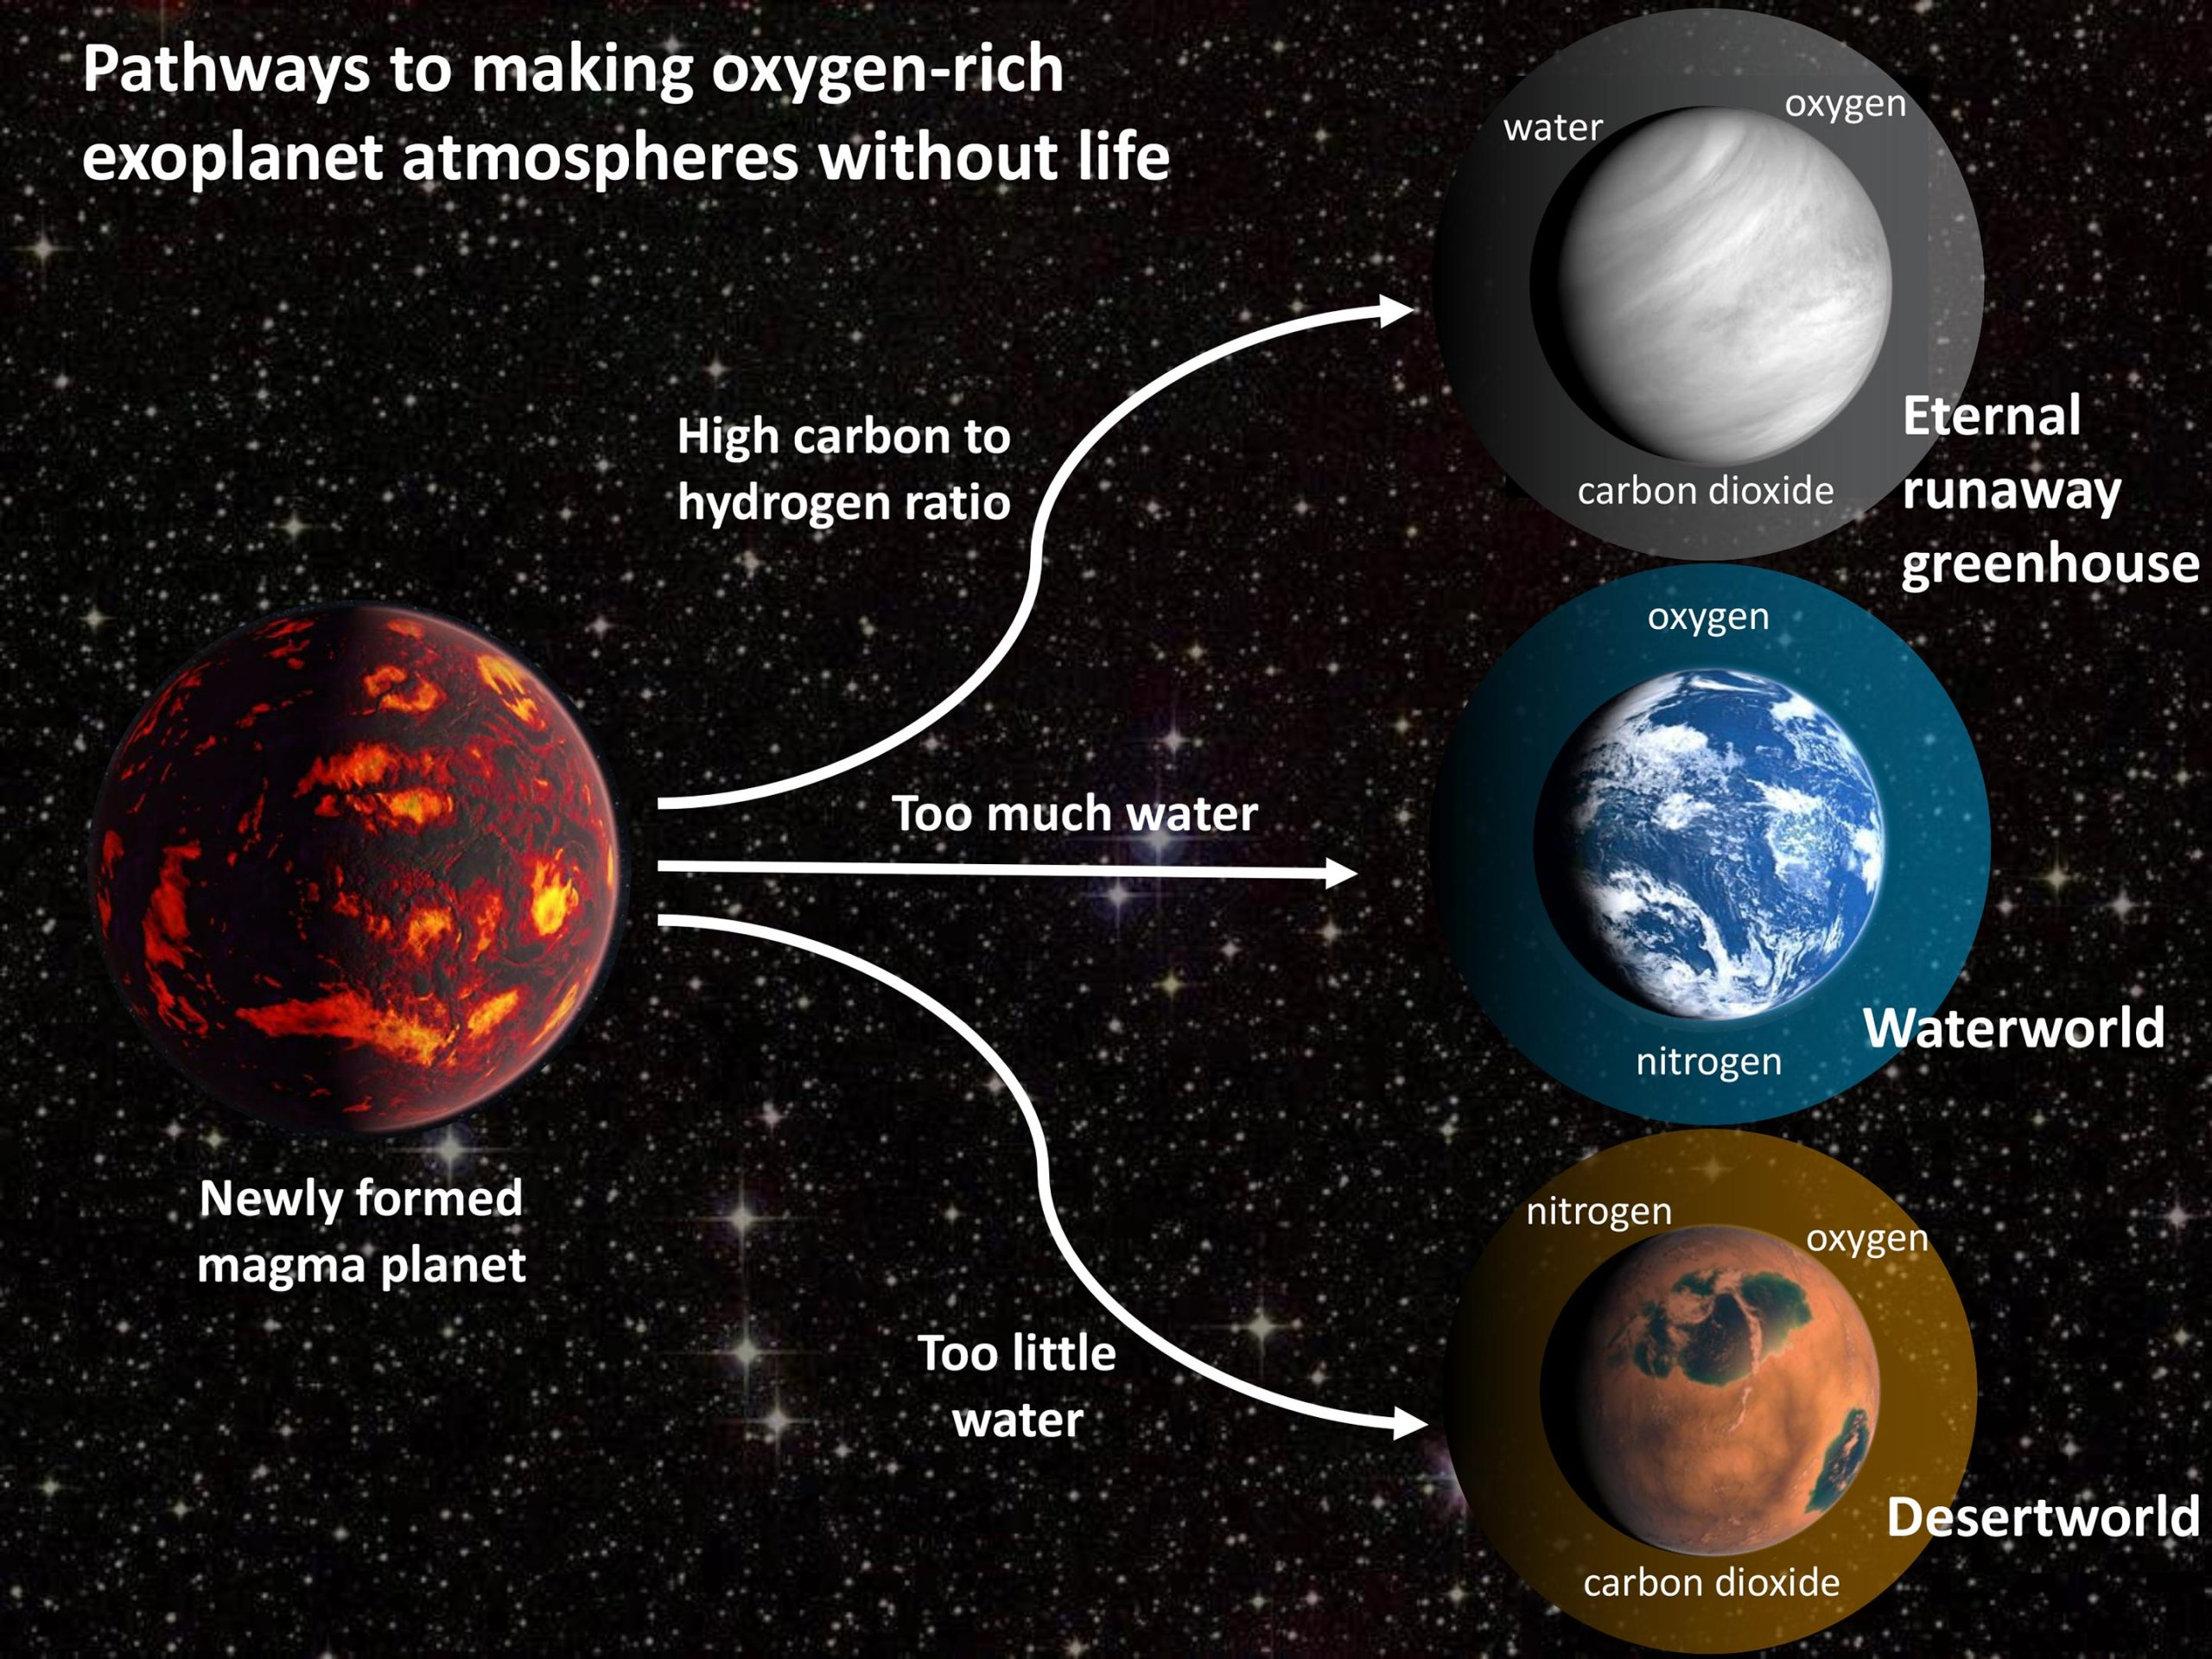 """Scientists Warn of """"Oxygen False Positives"""" in Search for Signs of Alien Life on Other Planets"""